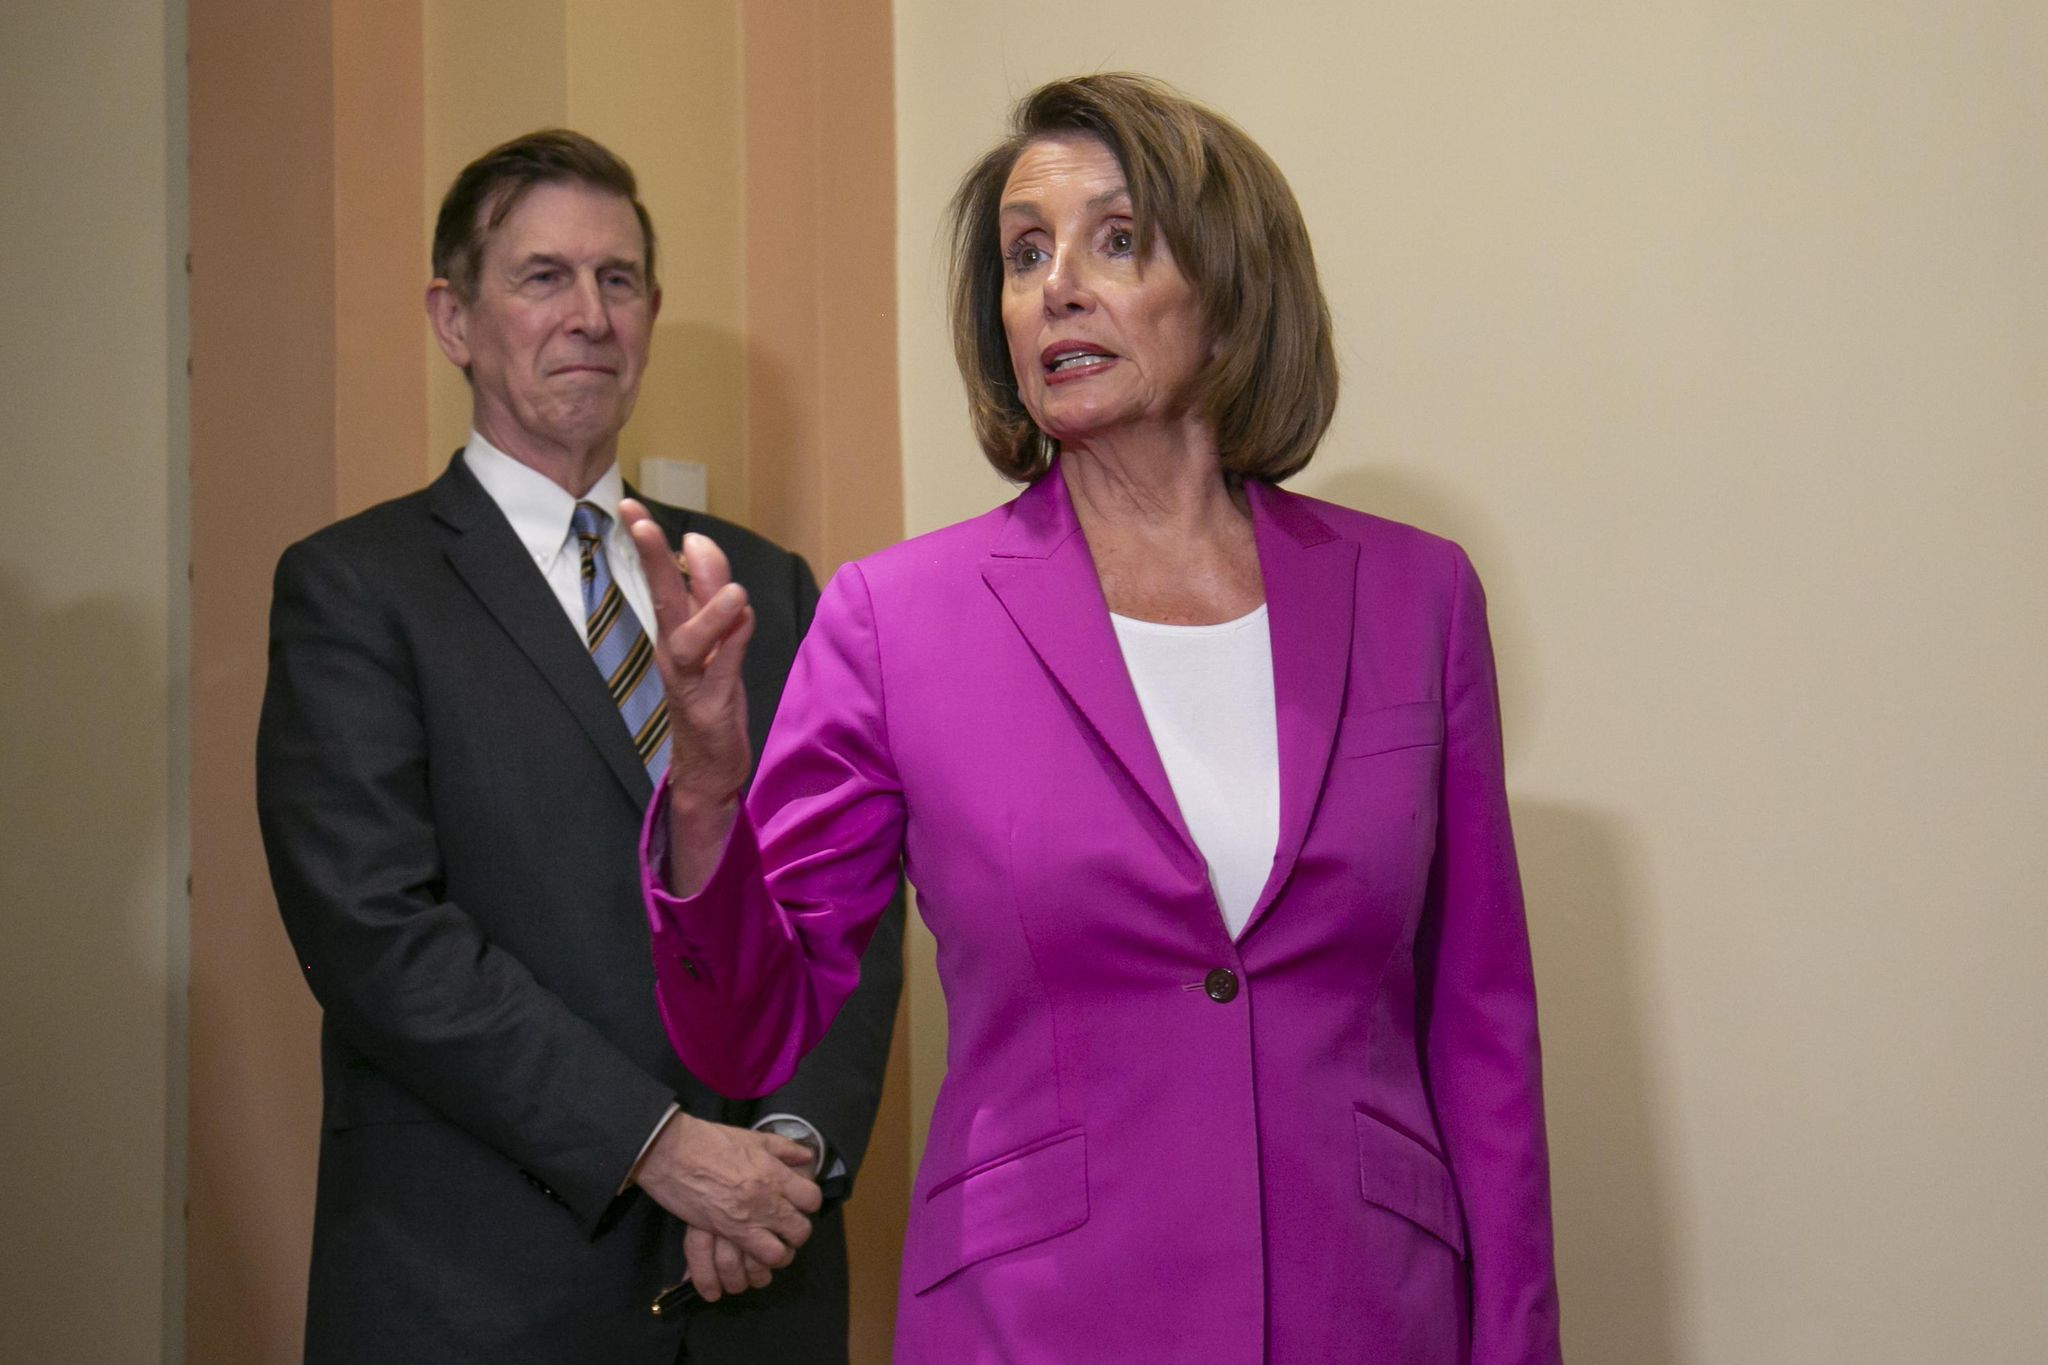 Trump asks why Pelosi is getting paid during the shutdown